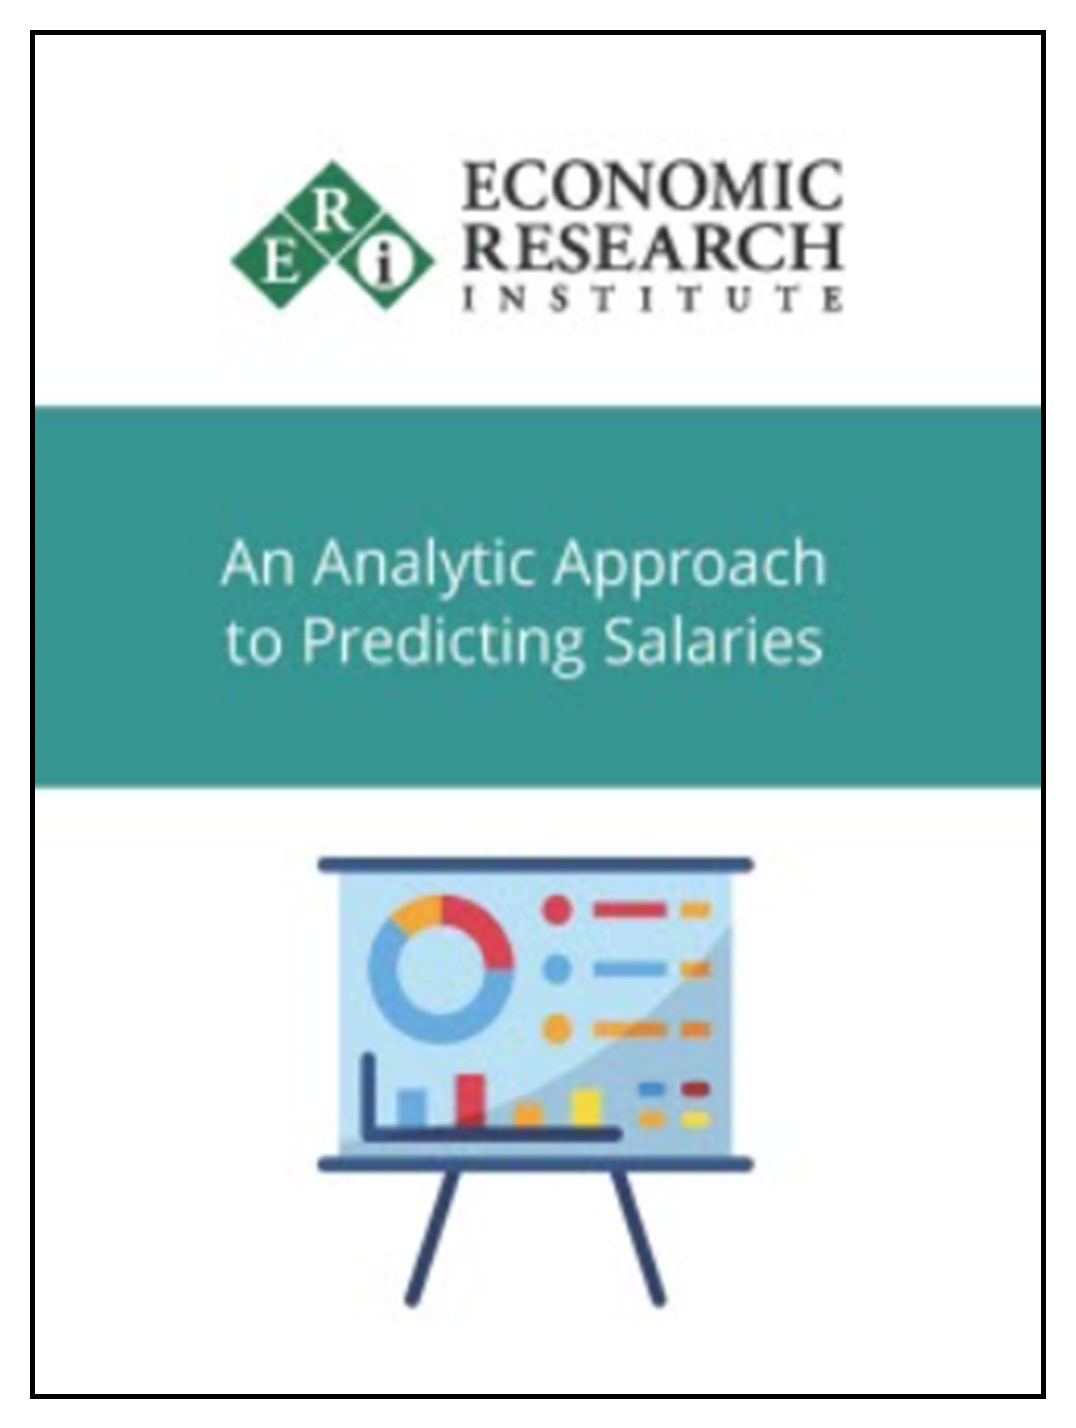 An Analytic Approach to Predicting Salaries